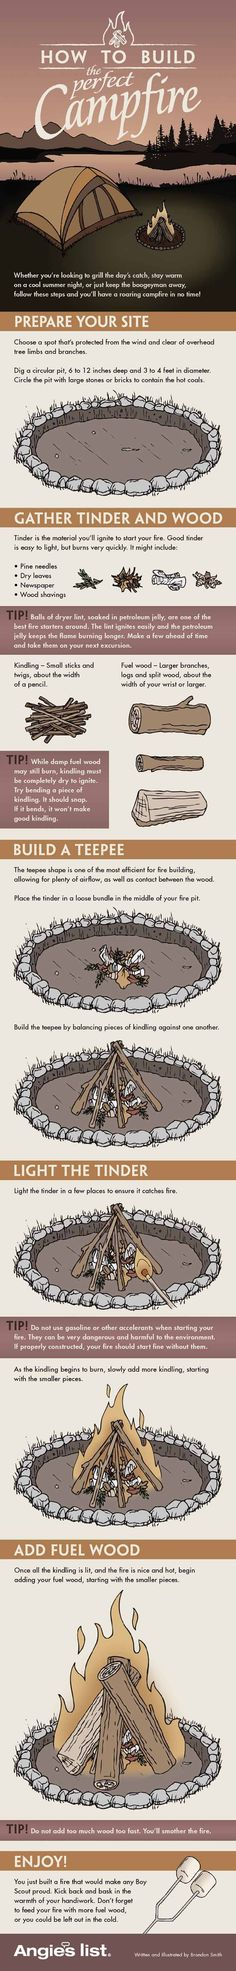 Campfire Infographic | How to Build the Perfect Campfire | Your Ultimate Guide For The Best Camping Experience Ever! | Fun Outdoor Activities by Survival Life at http://survivallife.com/campfire-infographic/